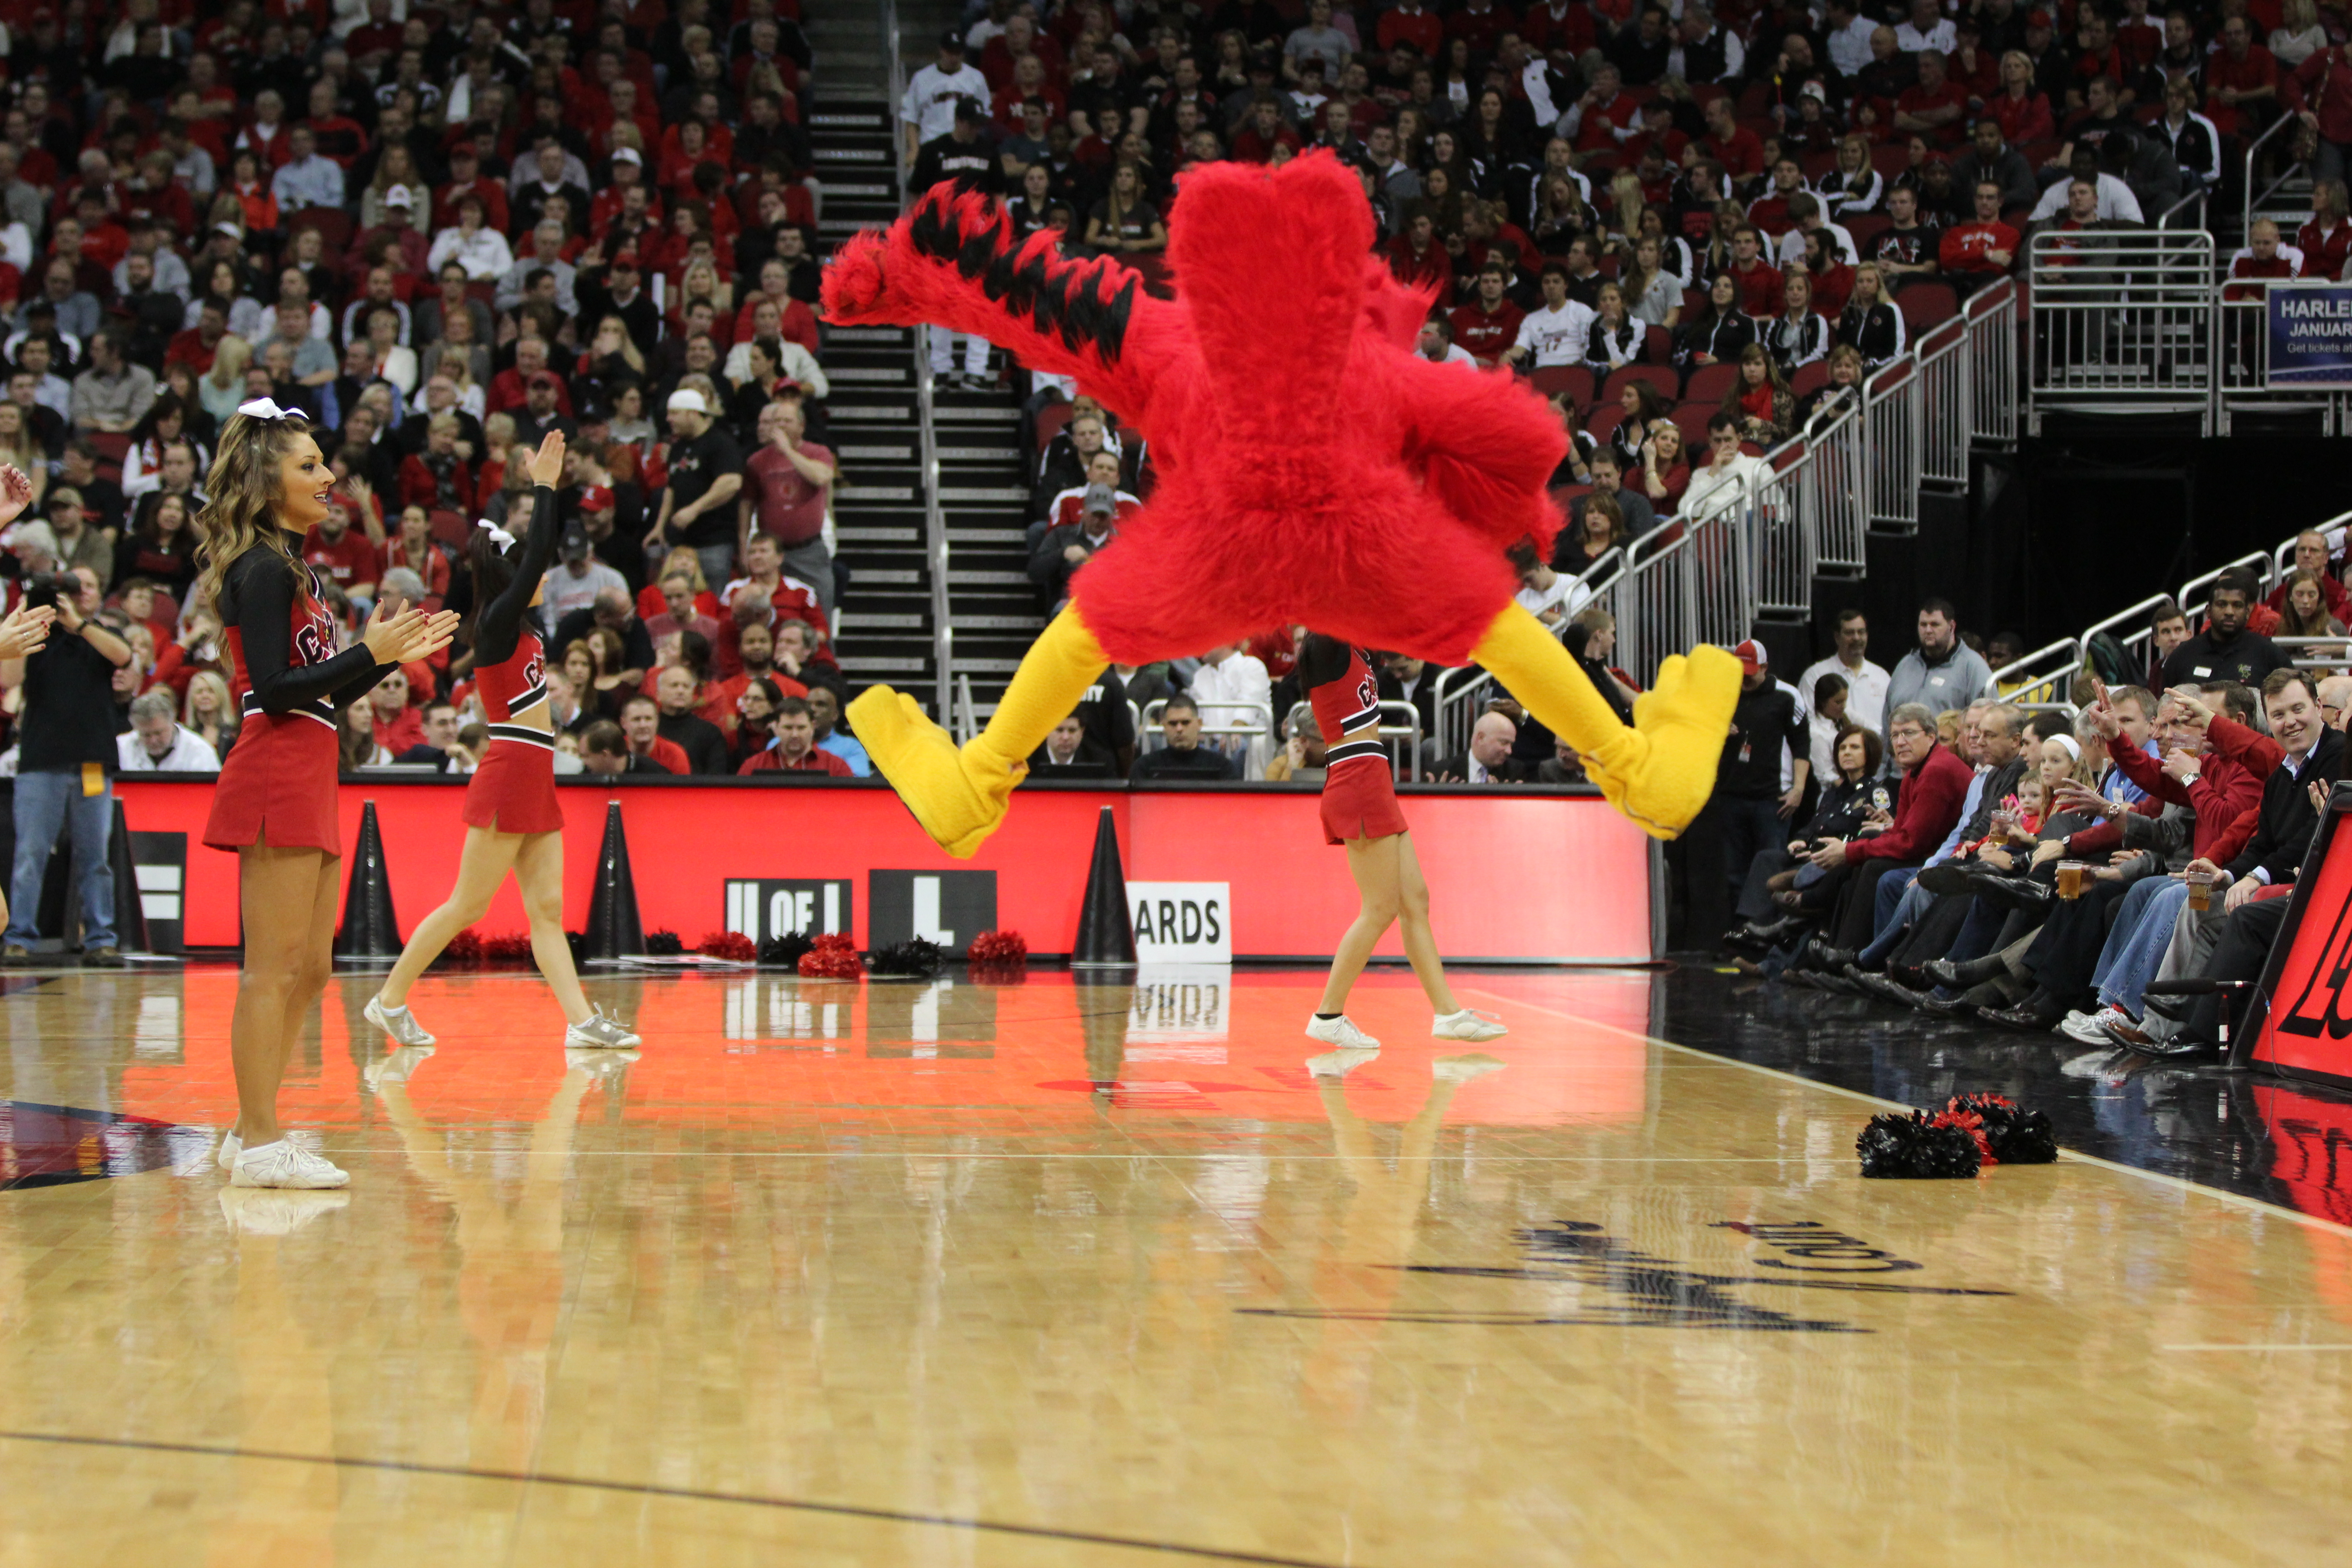 Louie the Cardinal Louisville Basketball Bird Splits Photo by Mike Lindsay